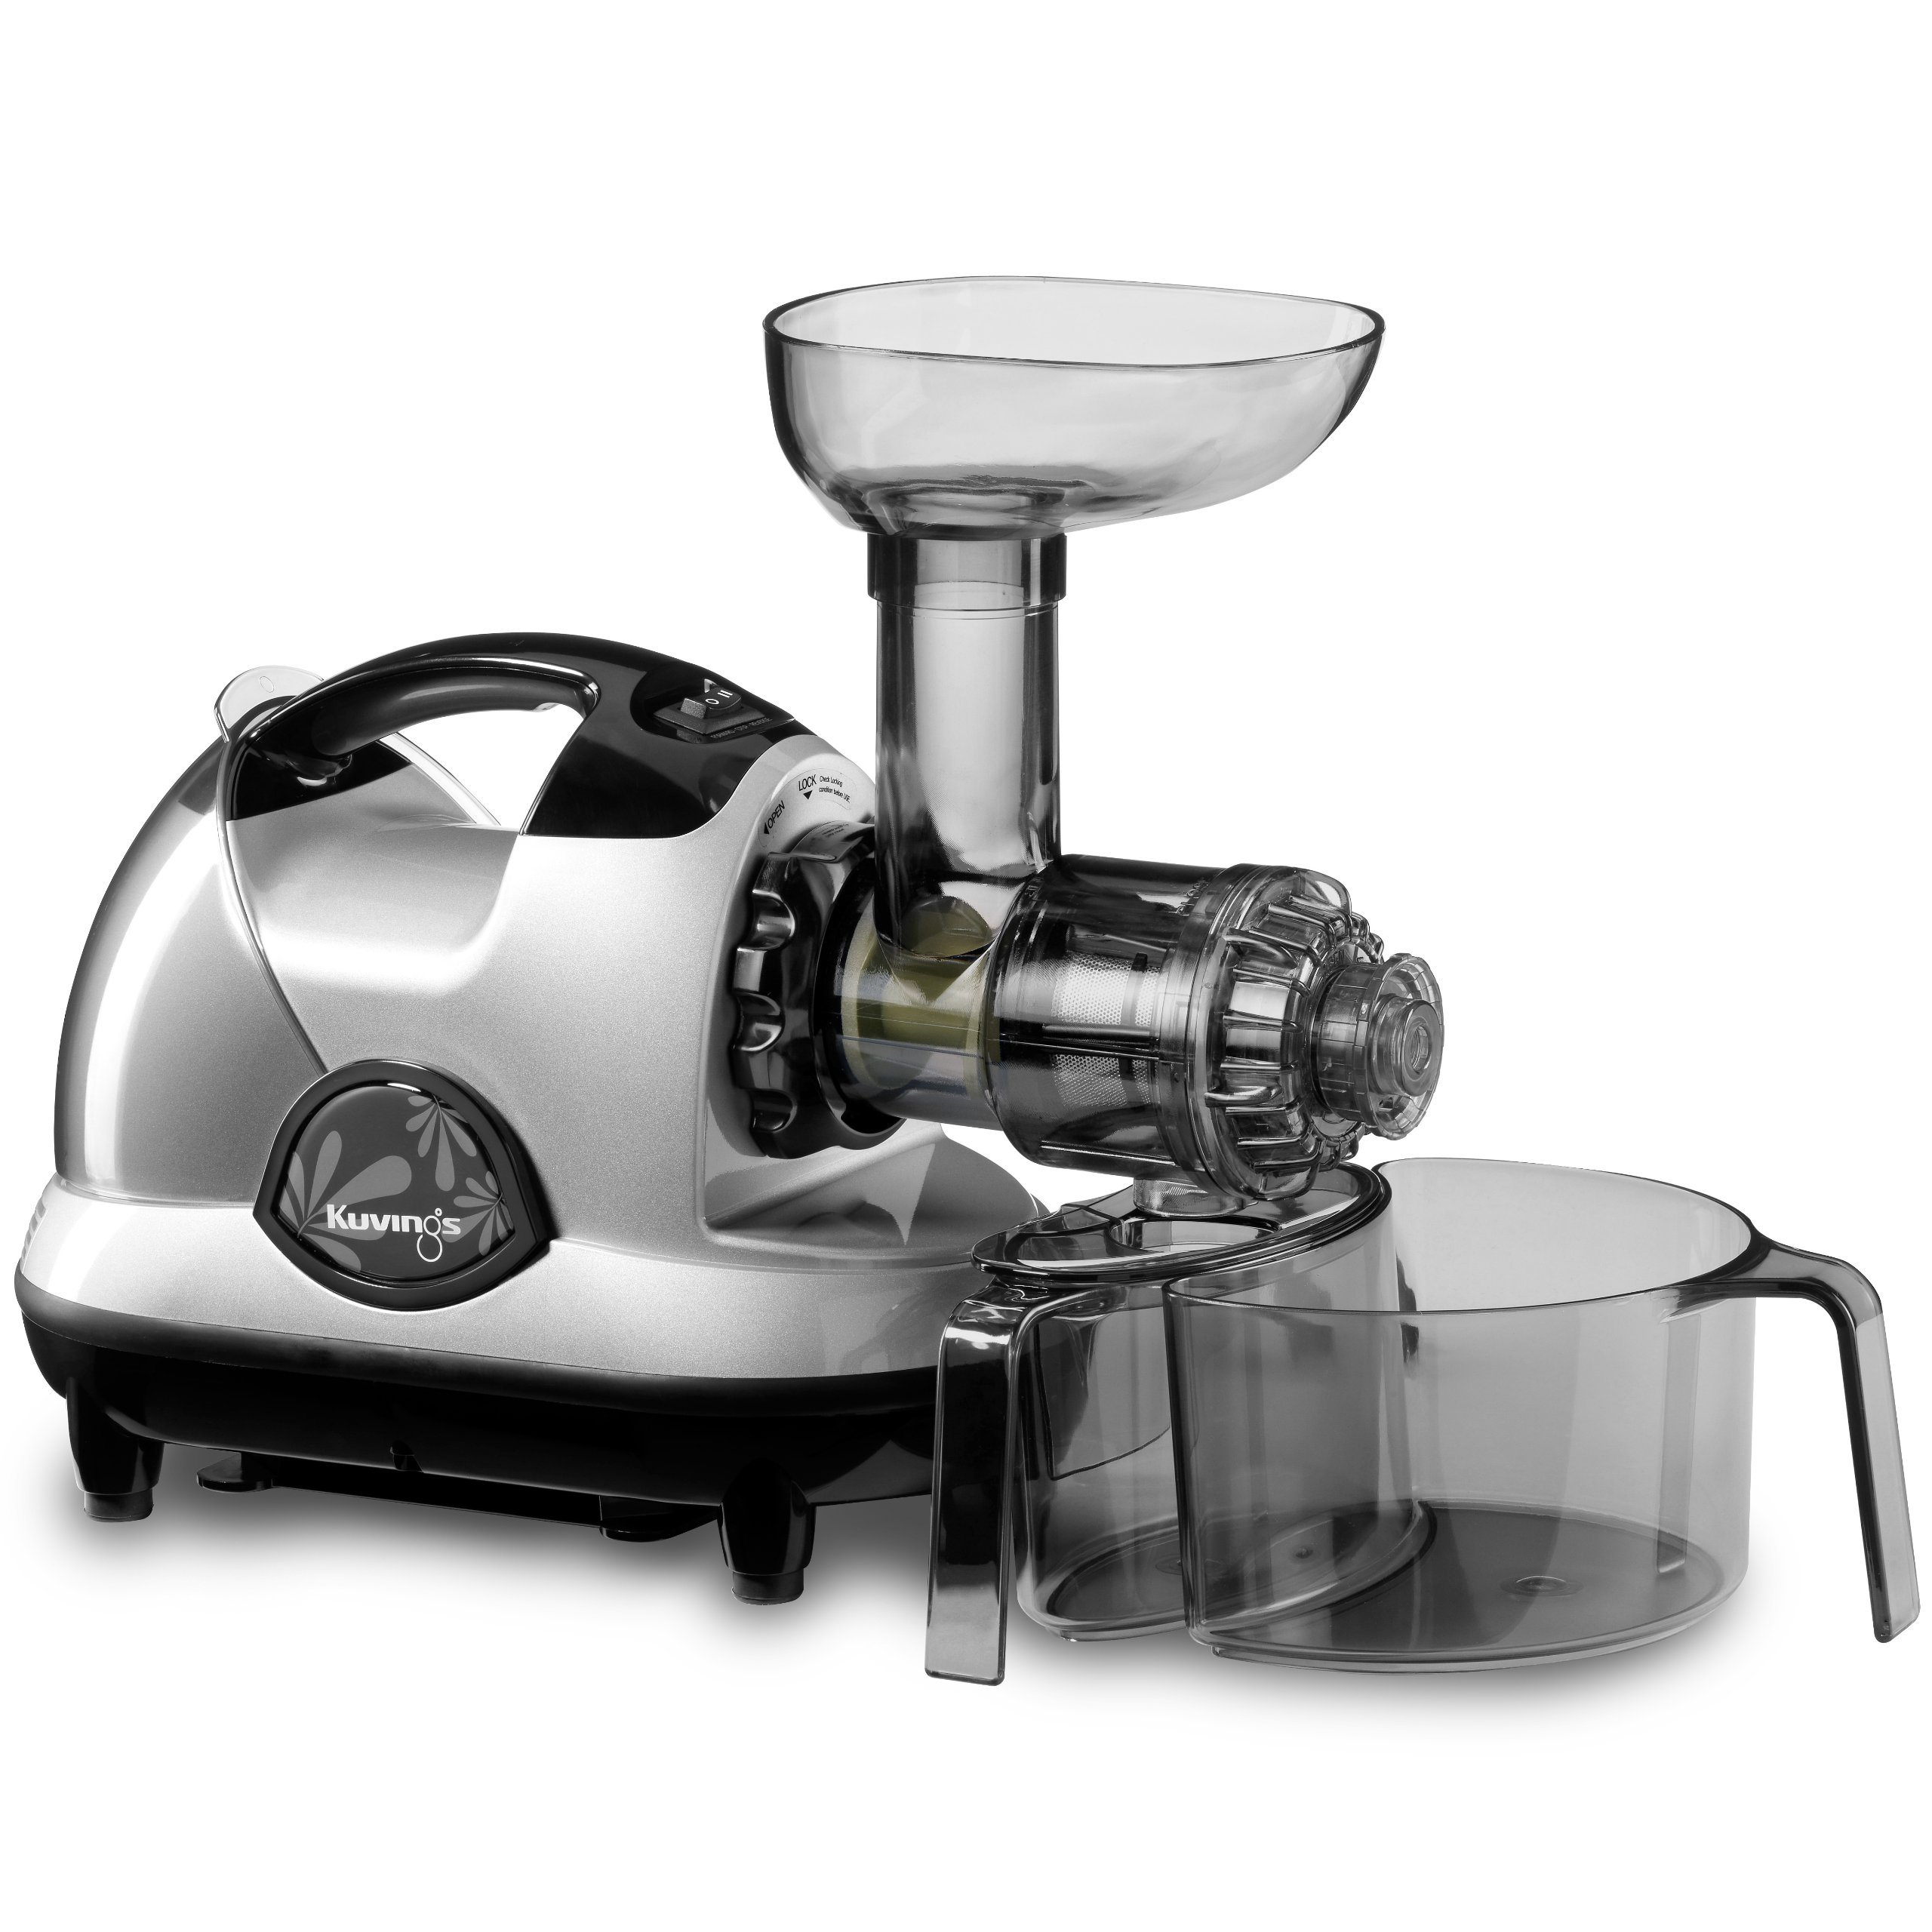 Kuvings NJE-3580U Masticating Slow Juicer, Silver by Kuvings